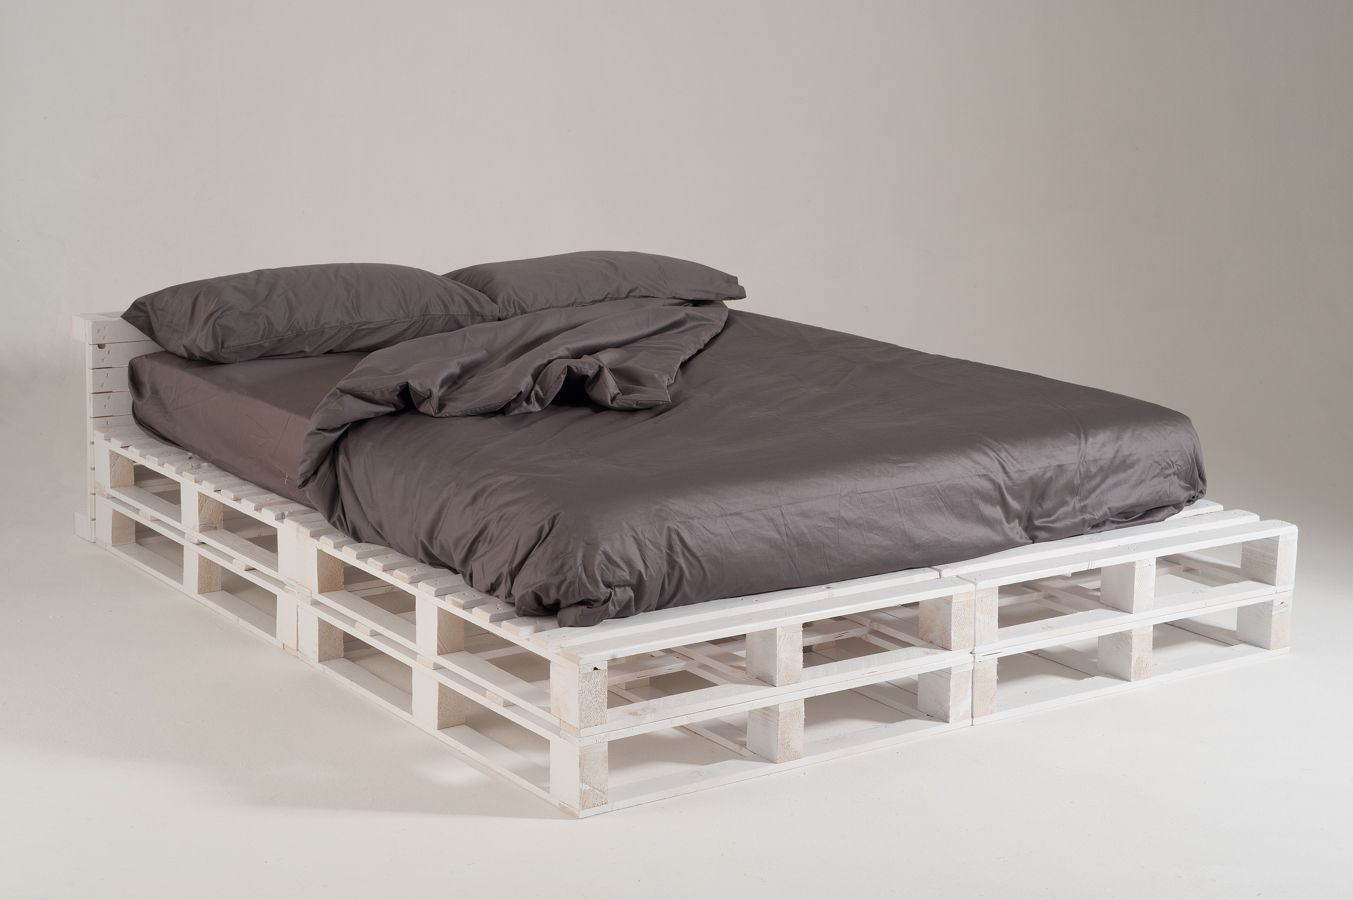 Letto futon con pallet futon bed made with pallet foto - Letto in pallet ...